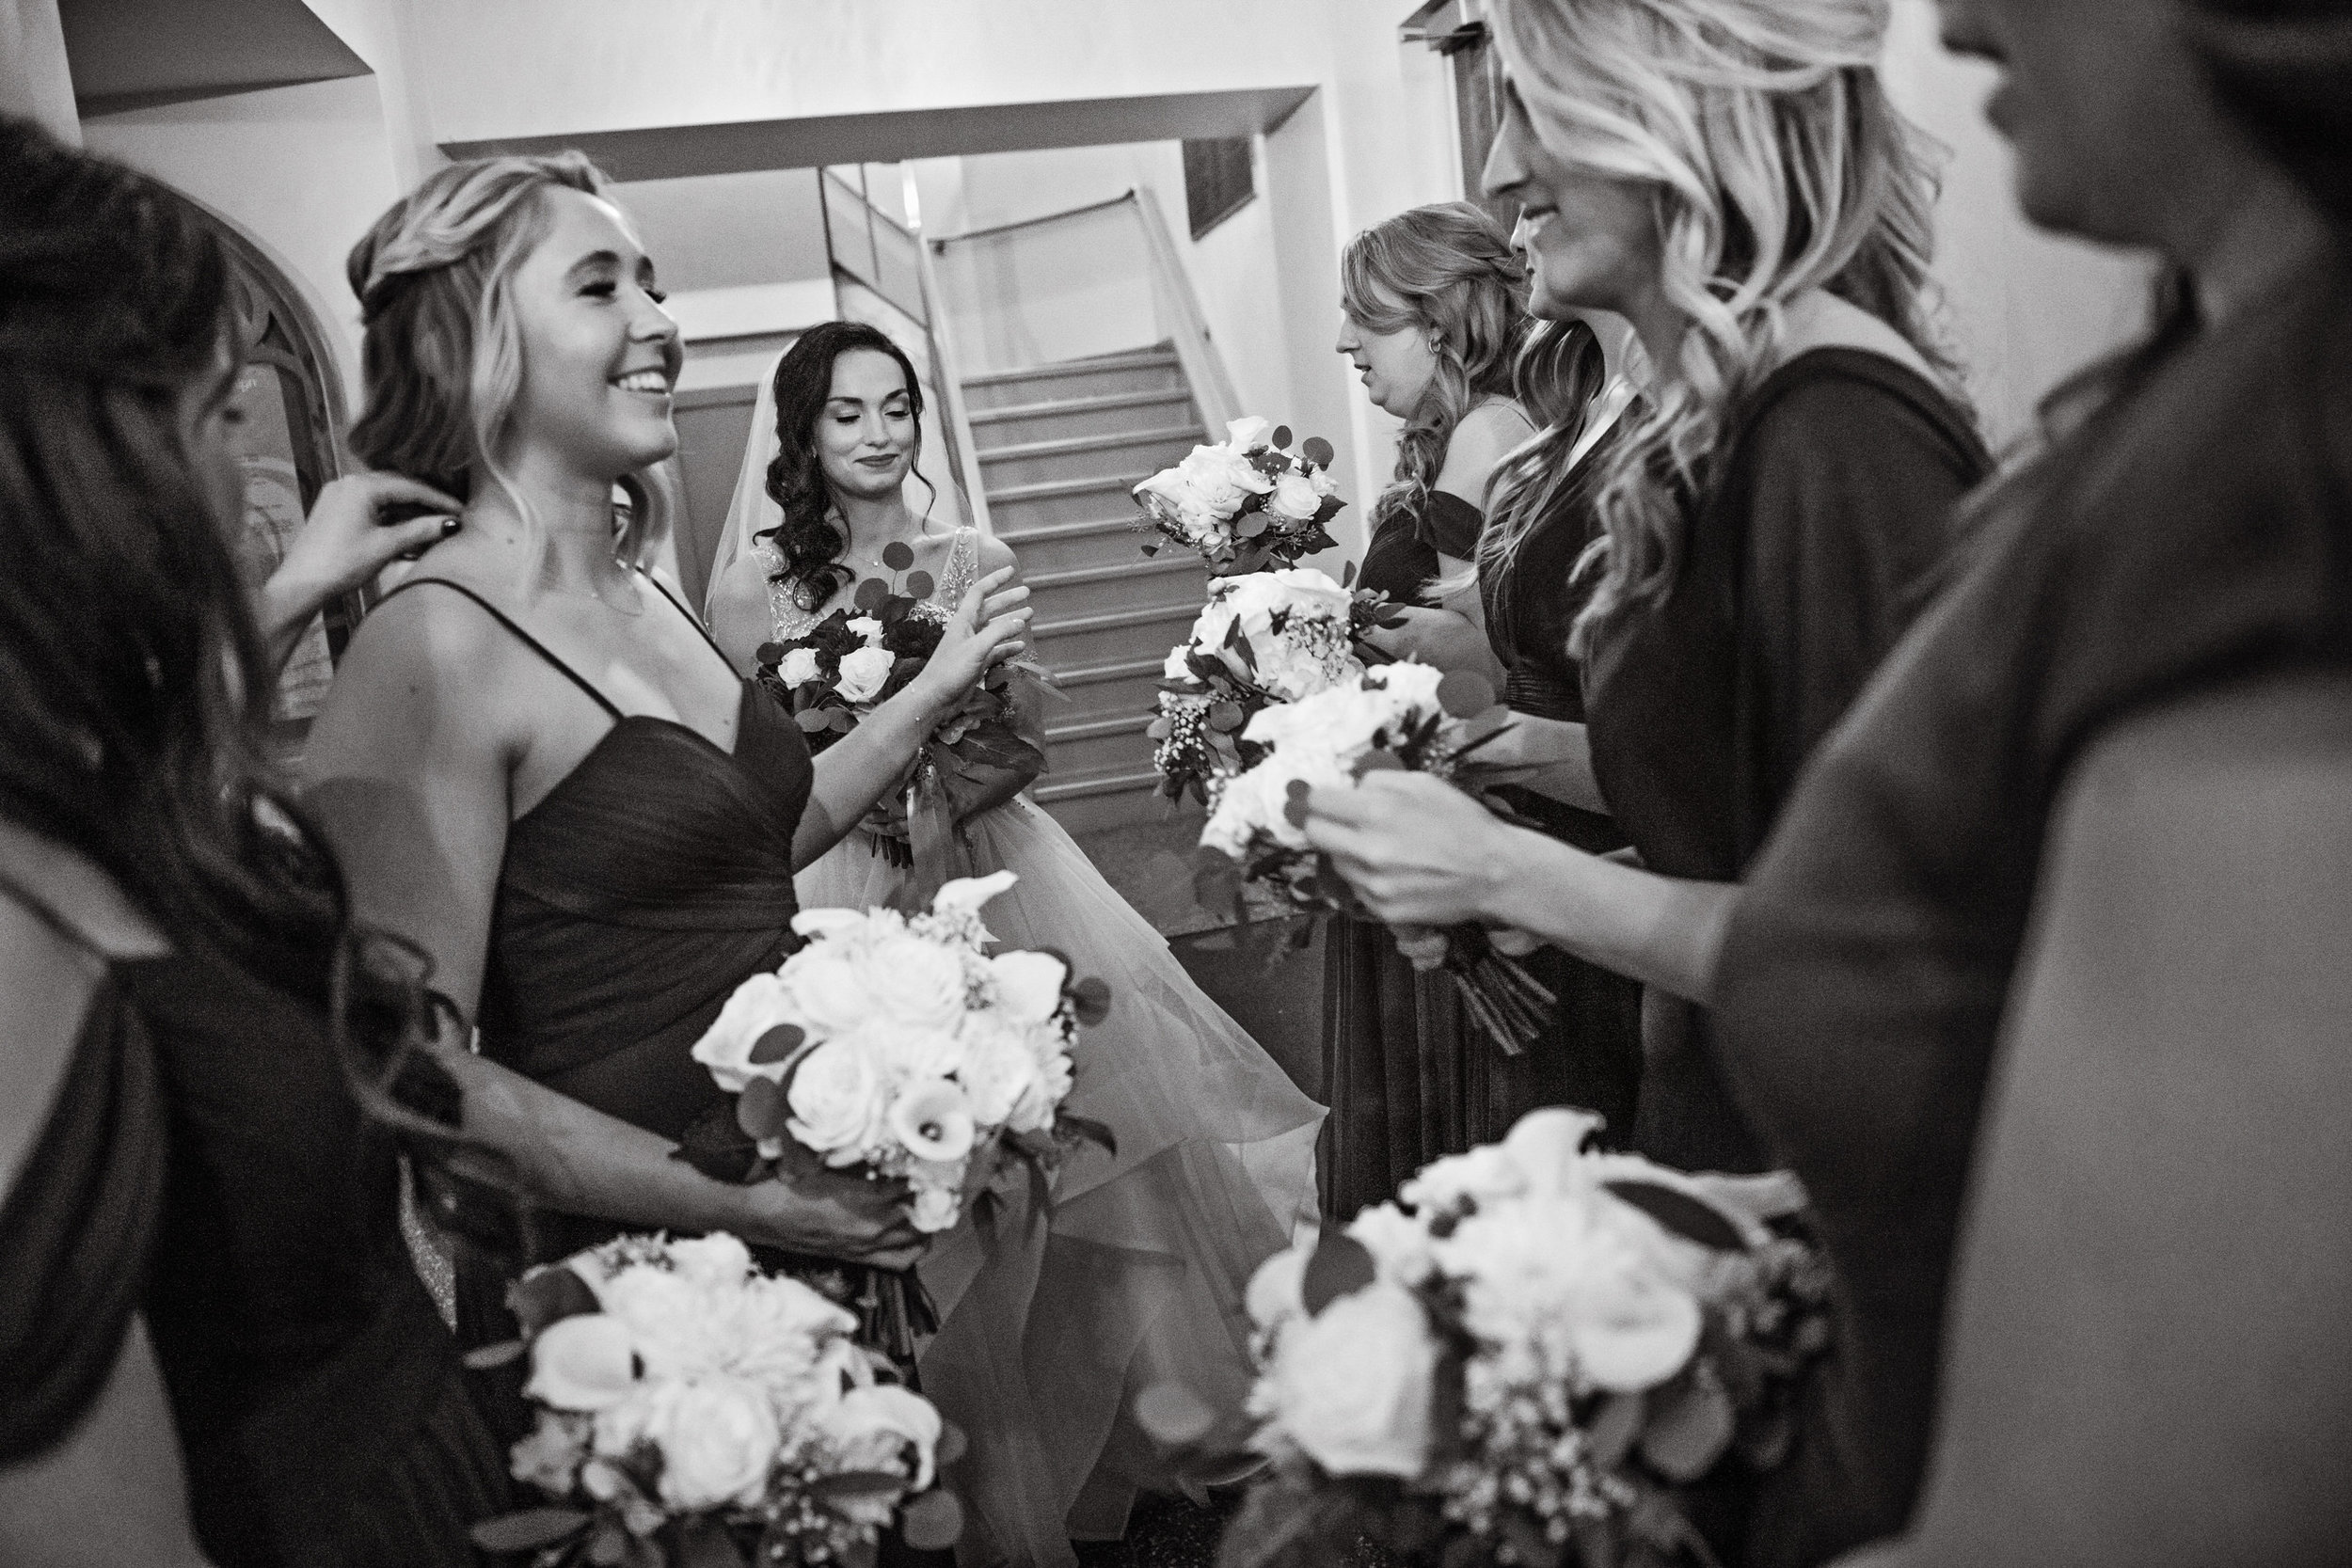 ValleyMansionWedding-Colleen&Conor-Ceremony-20.jpg